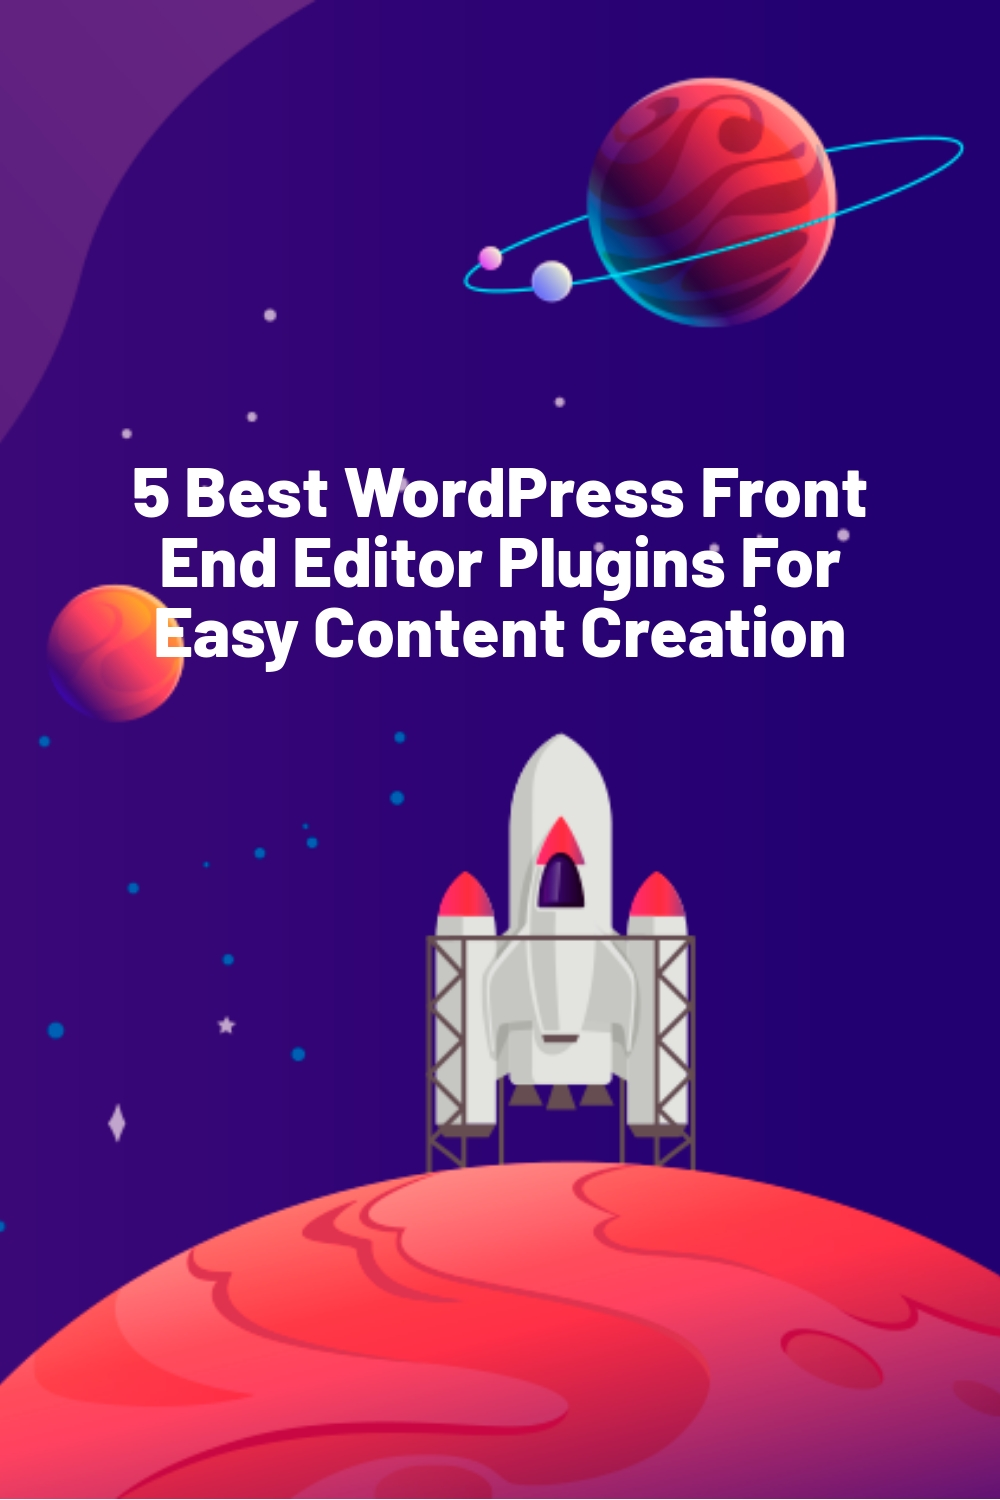 5 Best WordPress Front End Editor Plugins For Easy Content Creation